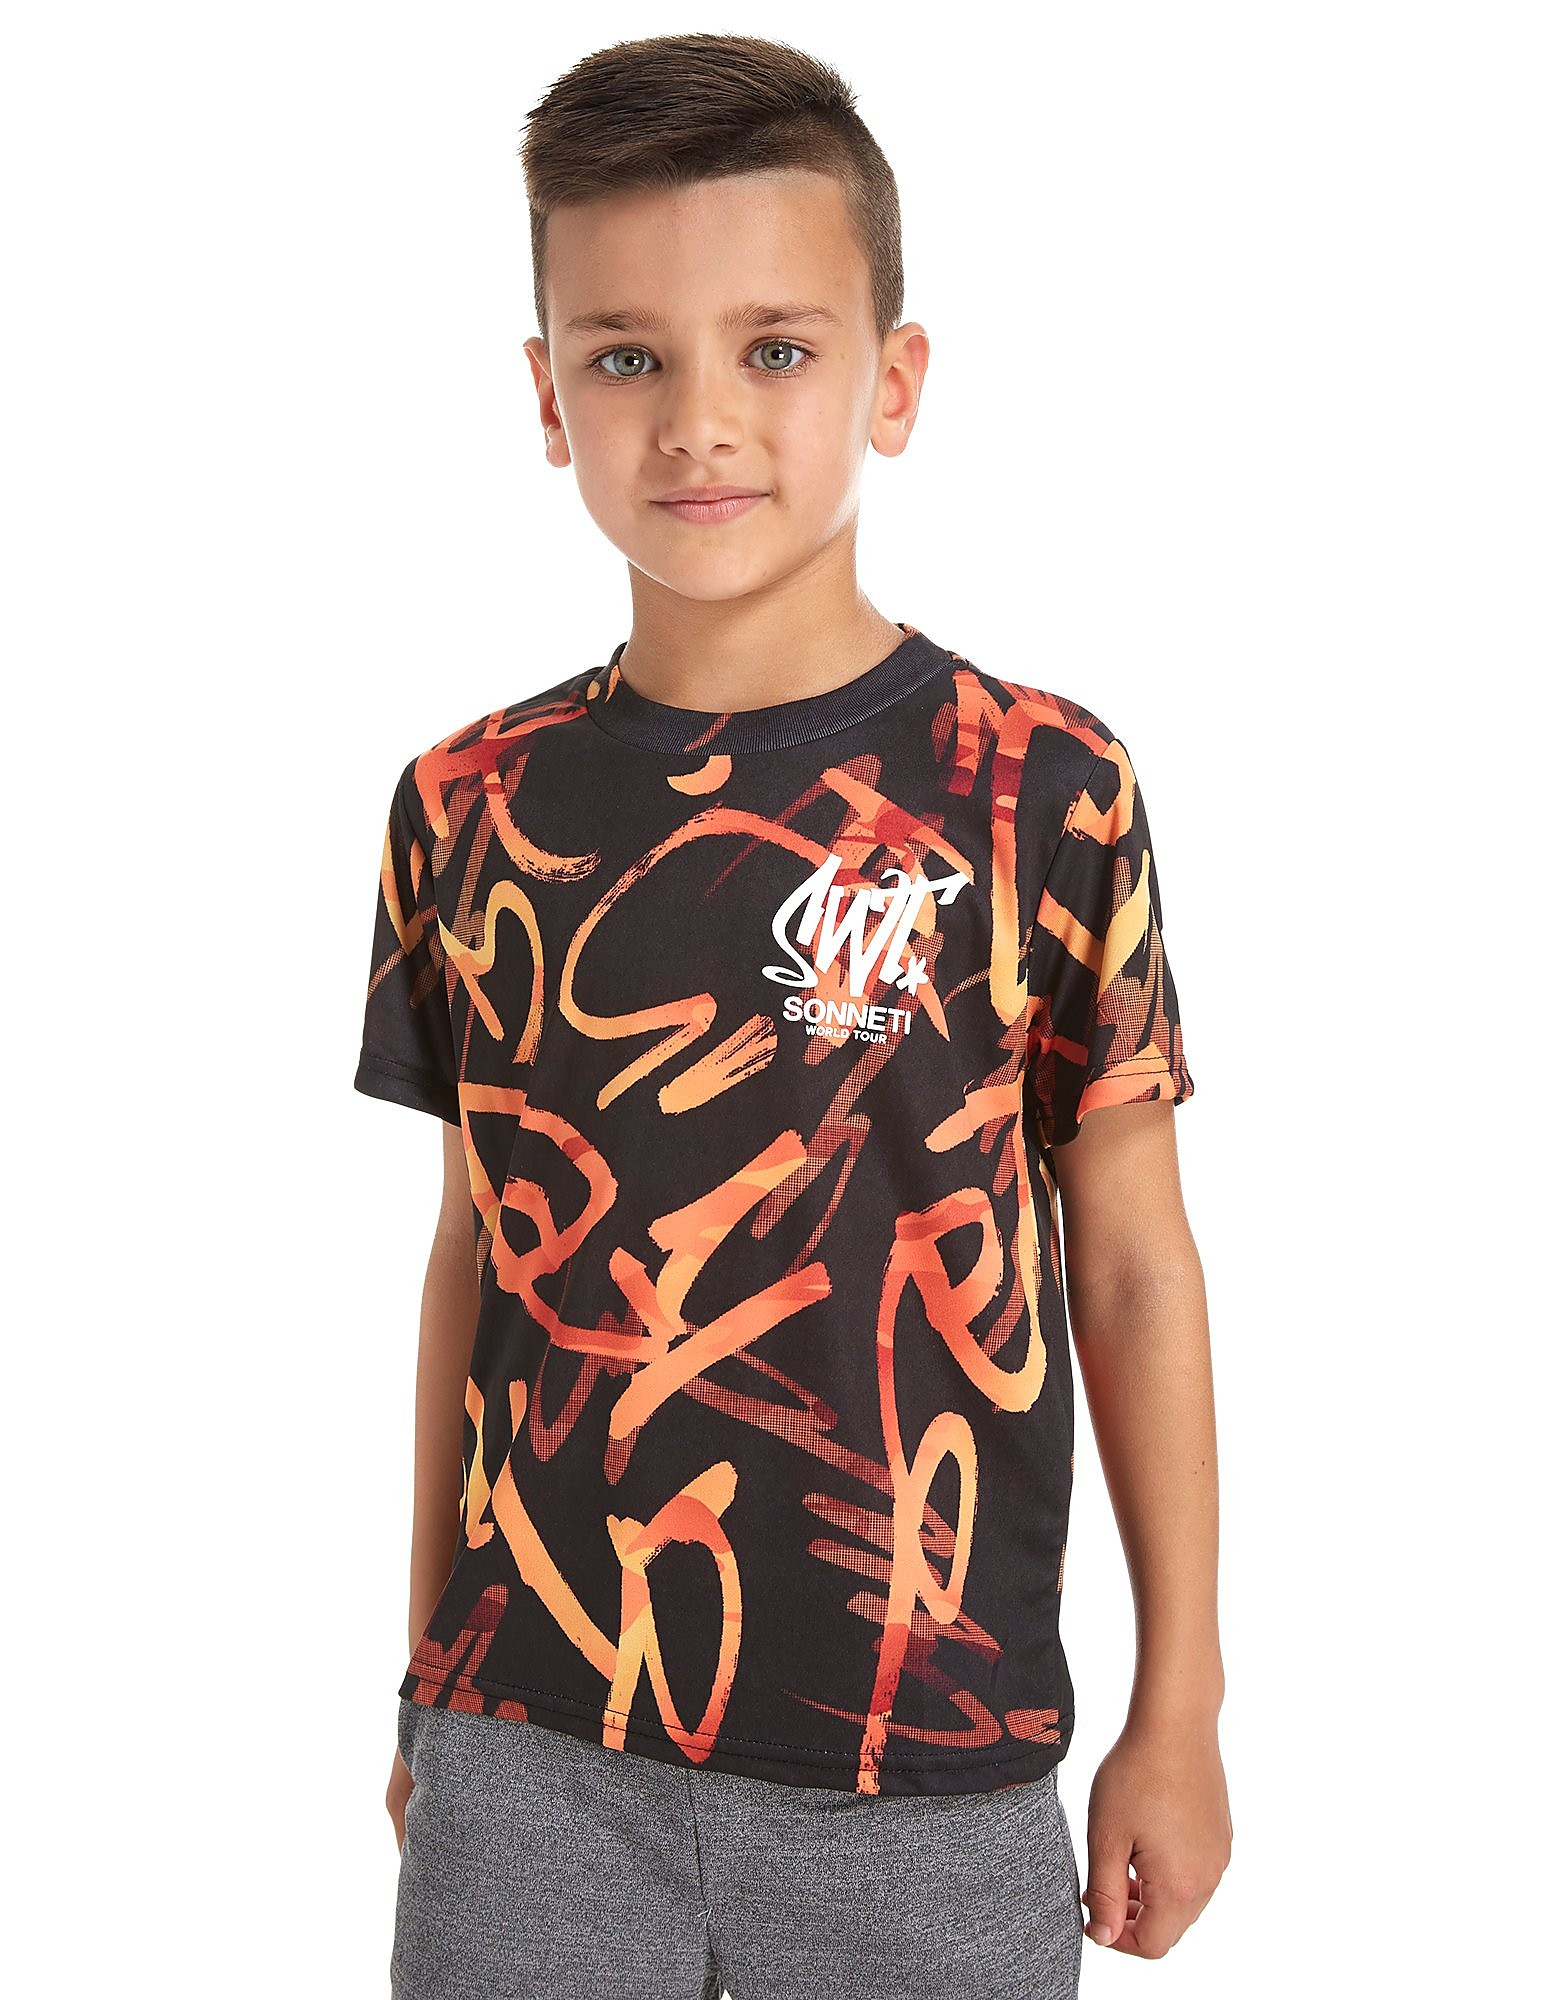 Sonneti Dimil T-Shirt Children